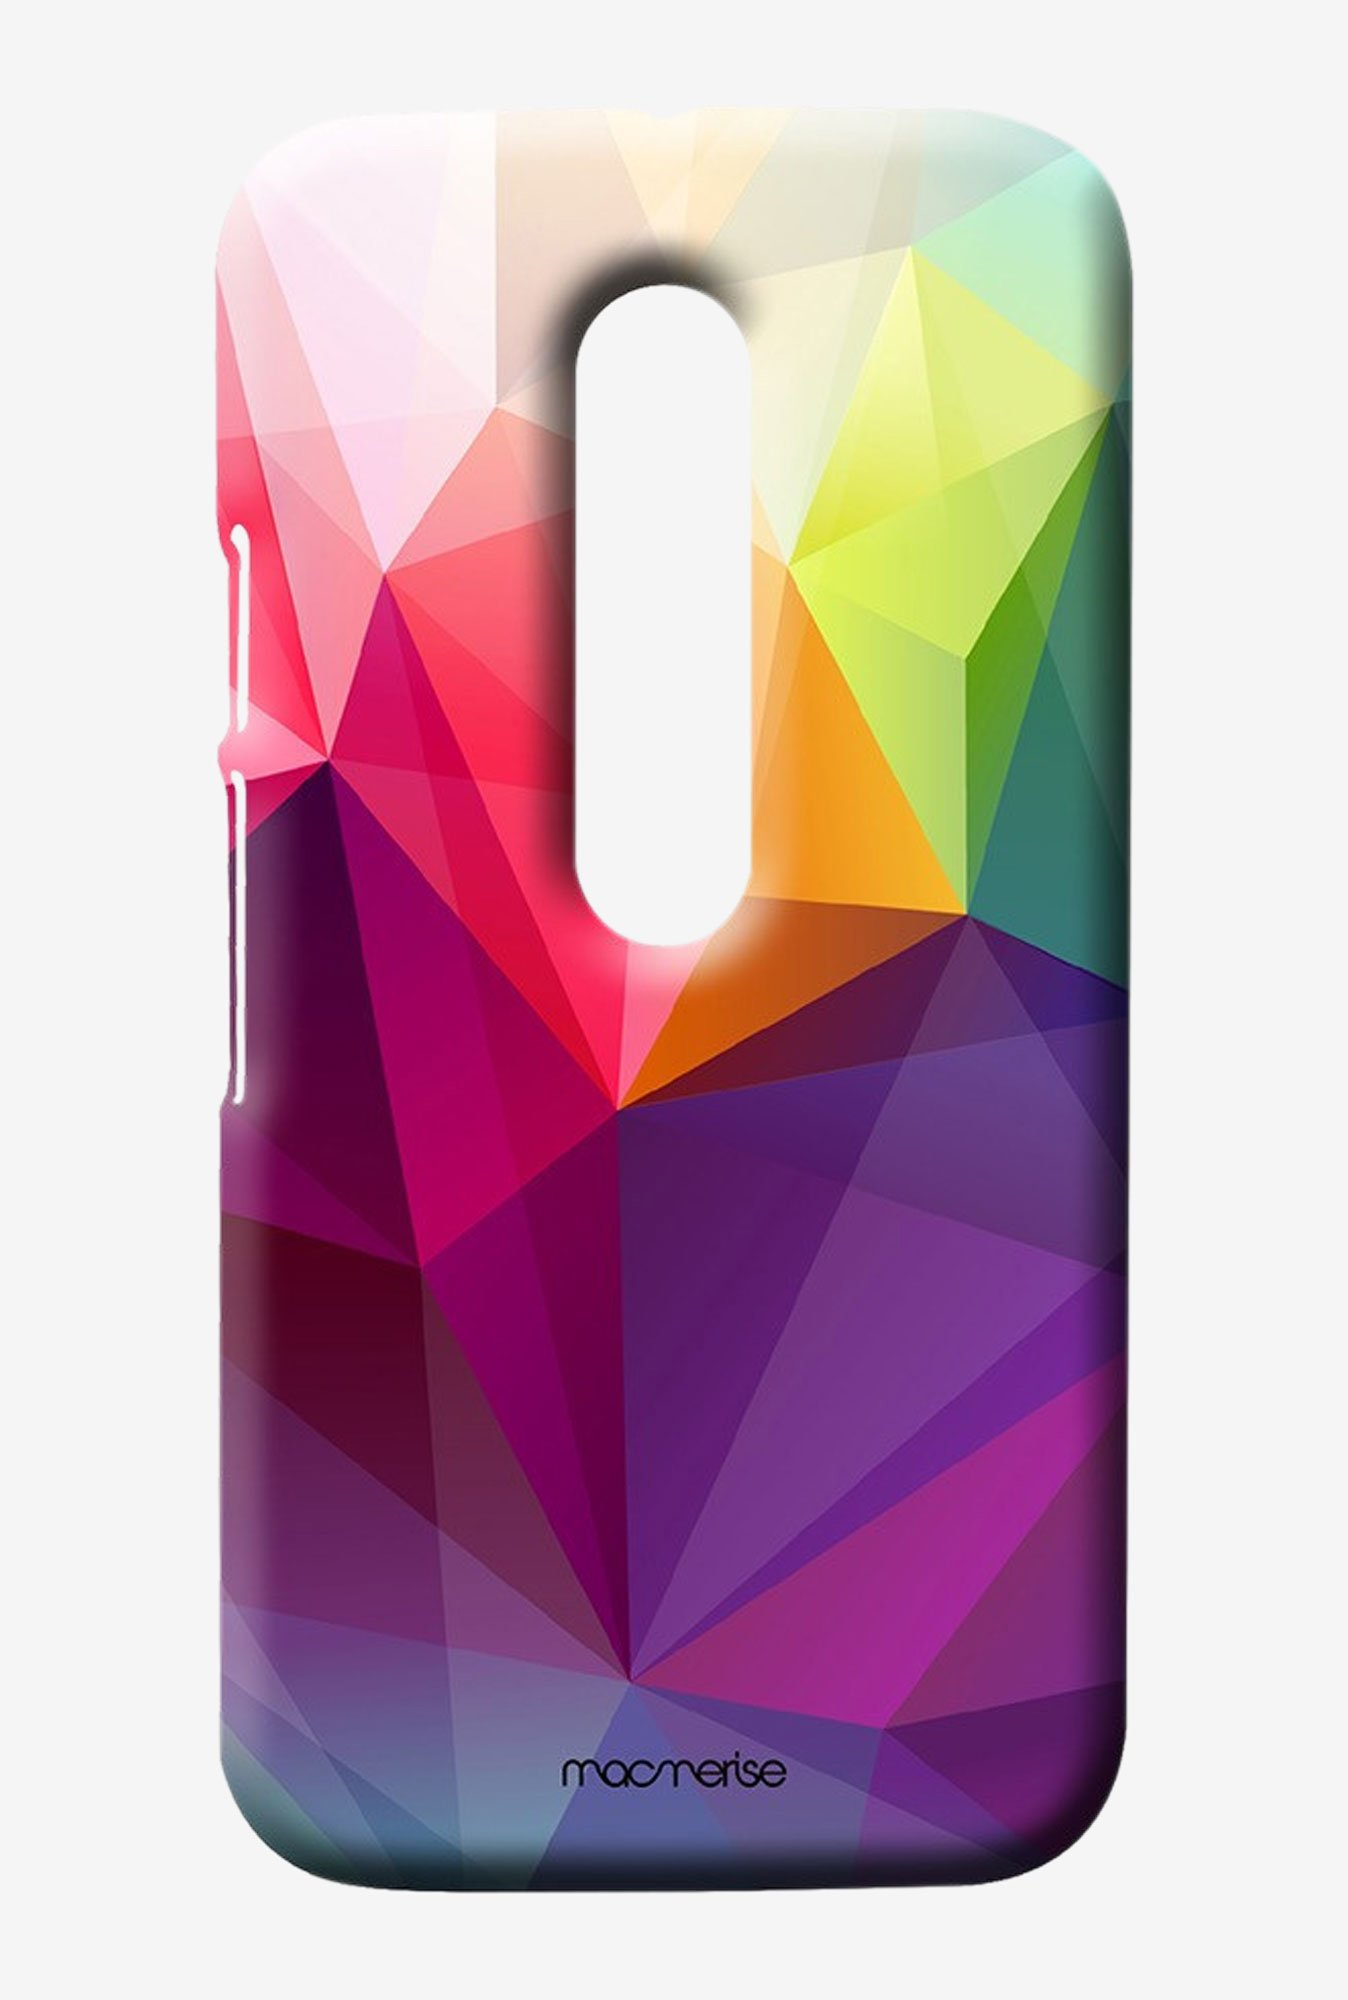 Macmerise Crystal Art Sublime Case for Moto G3